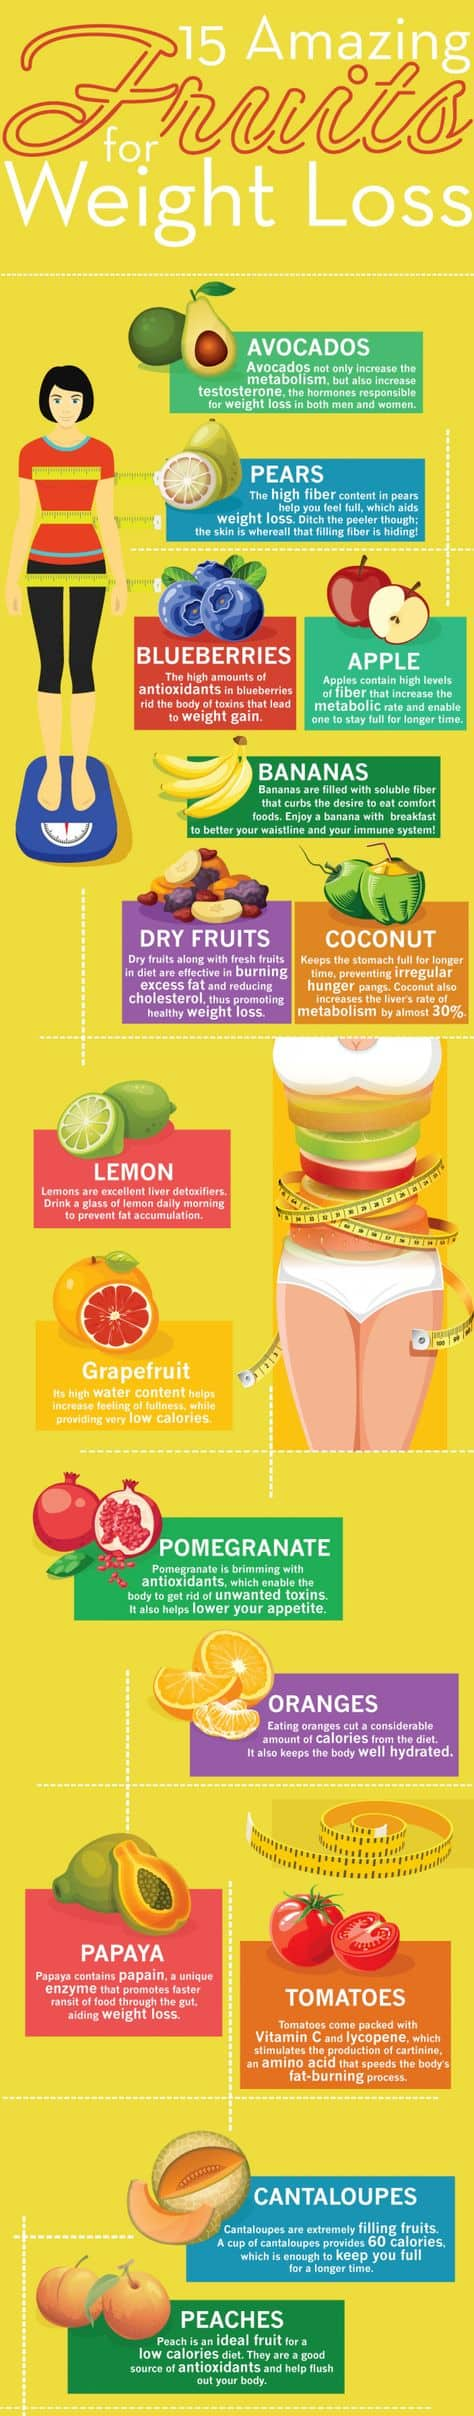 5 Shocking Ideas That Will Help you Lose Weight